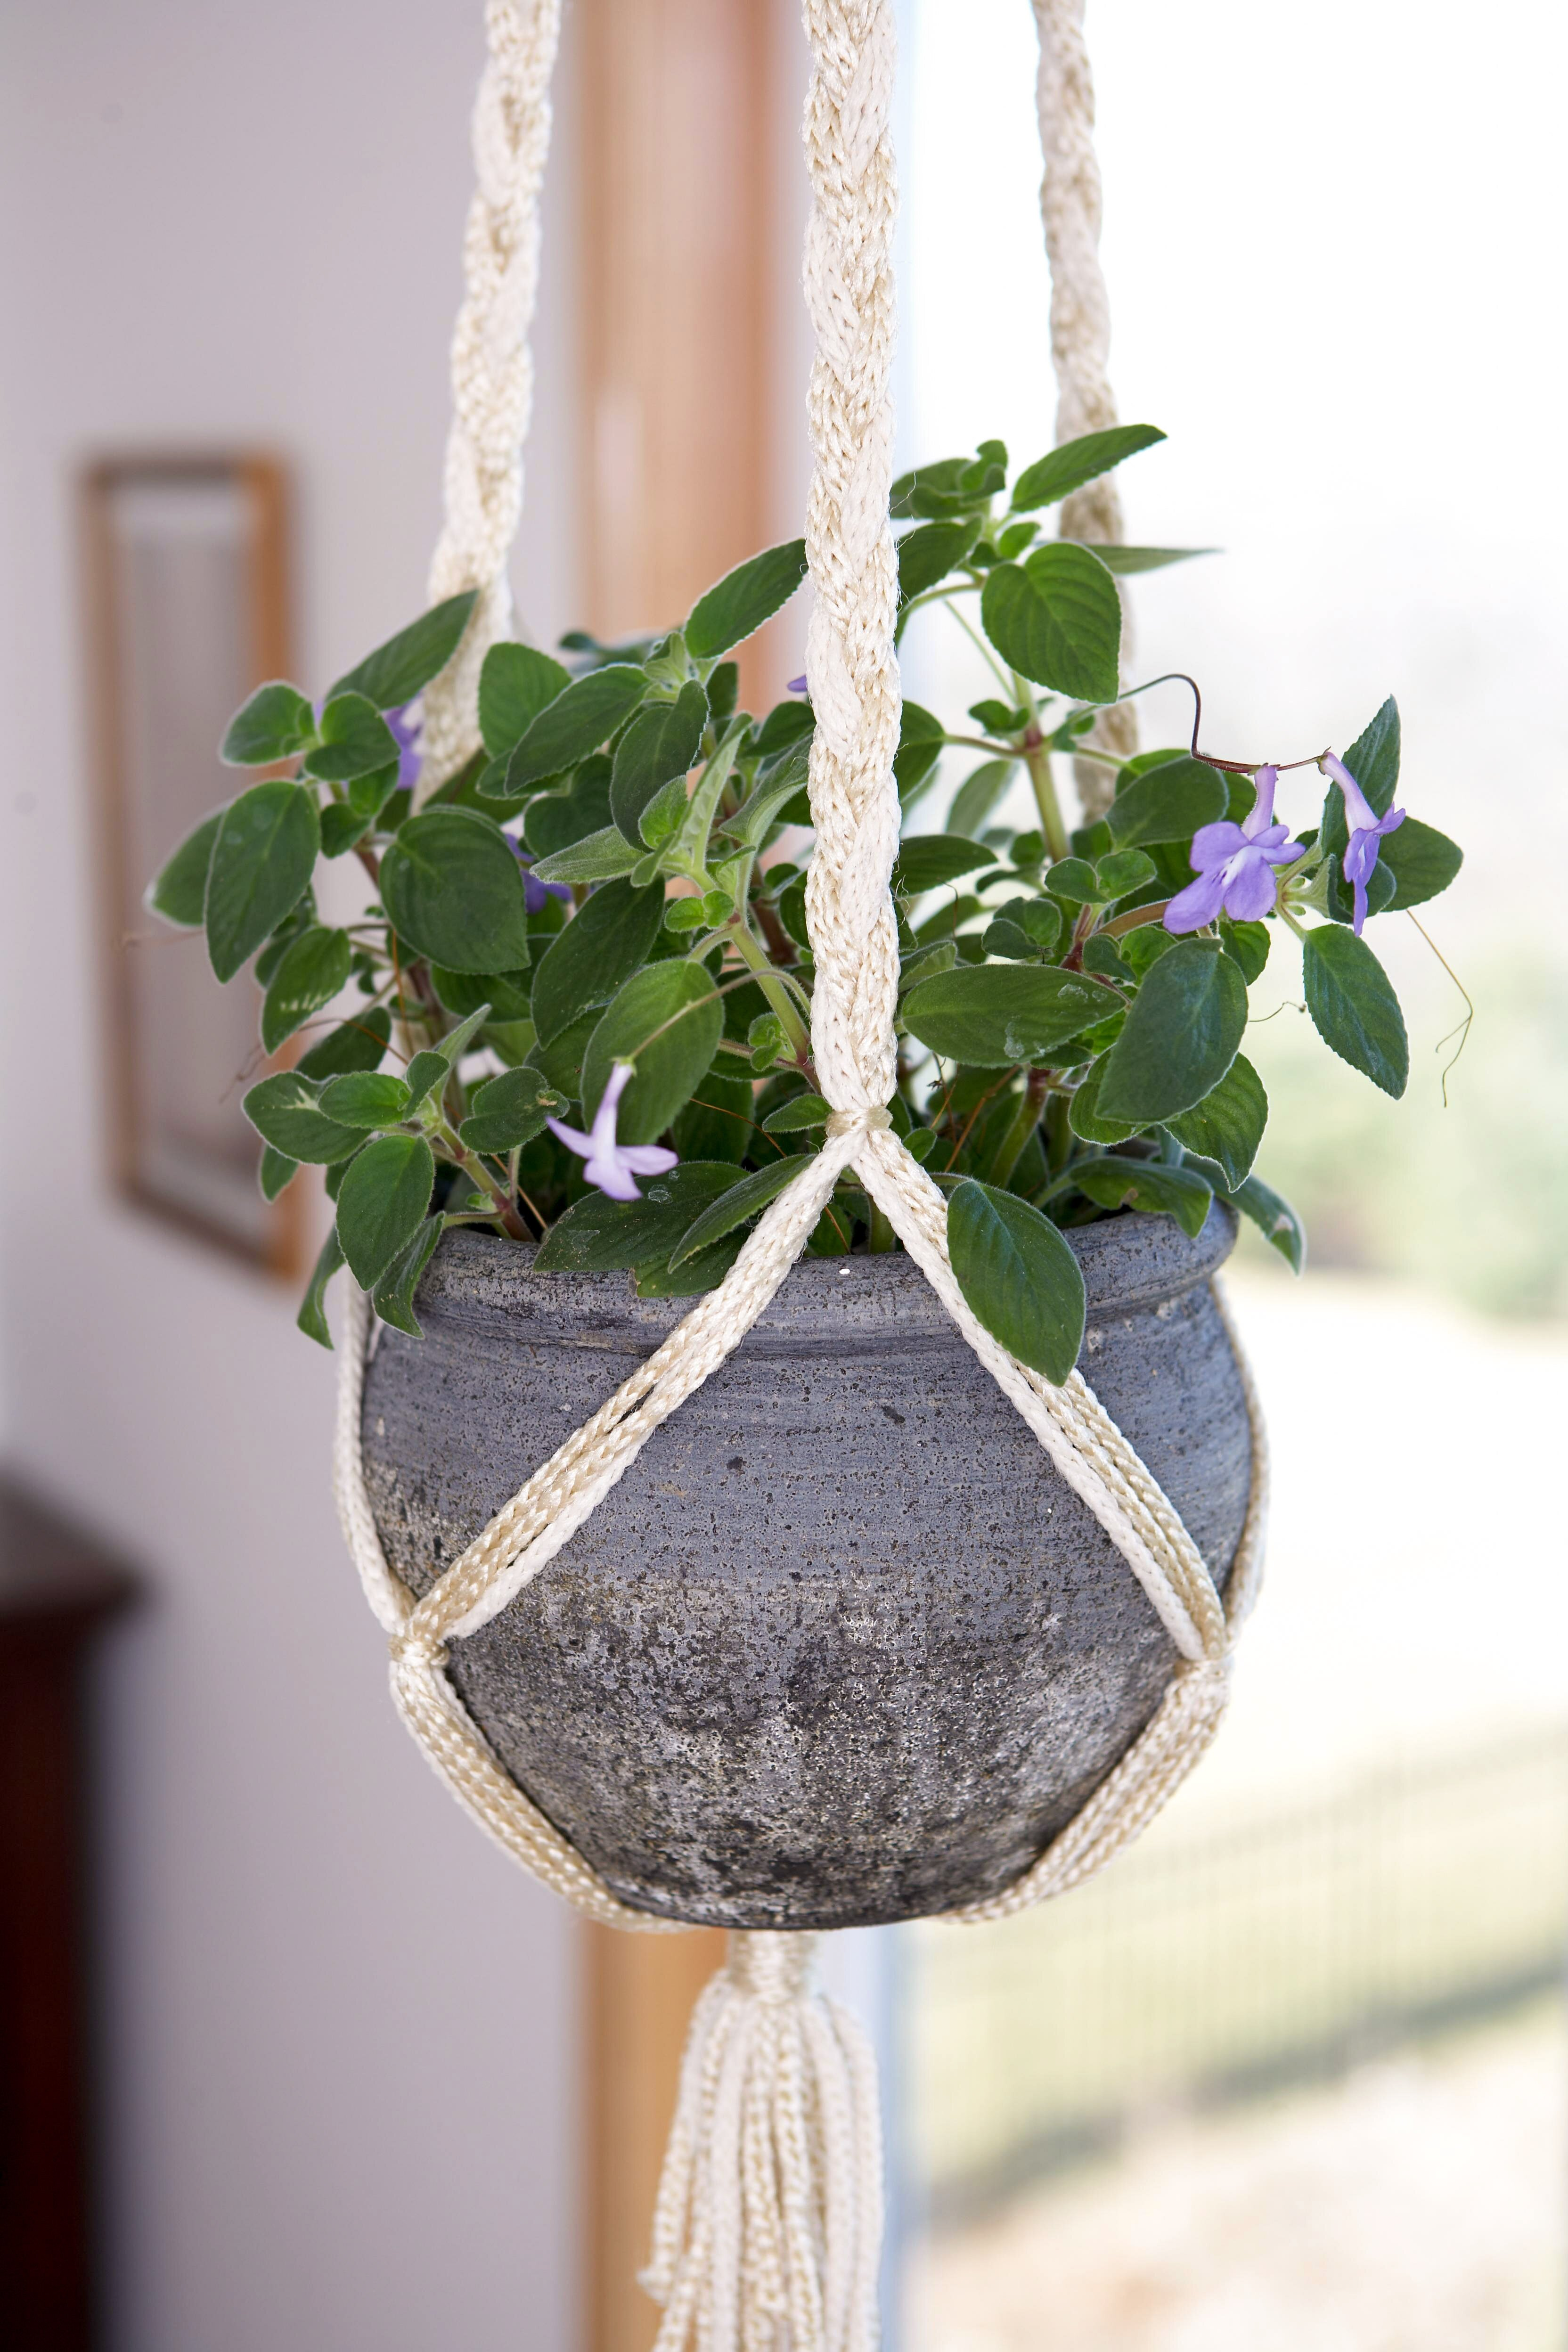 24 Flowering Plants That Can Grow Indoors on bonsai leaves, fall color leaves, poinsettia leaves, leaf leaves, wreath leaves, green leaves, fossil leaves, cactus leaves, plants leaves, hedge leaves, snow leaves, honeysuckle leaves, wildflower leaves, grass leaves, bulb leaves, moss leaves, fruit leaves, garden leaves,